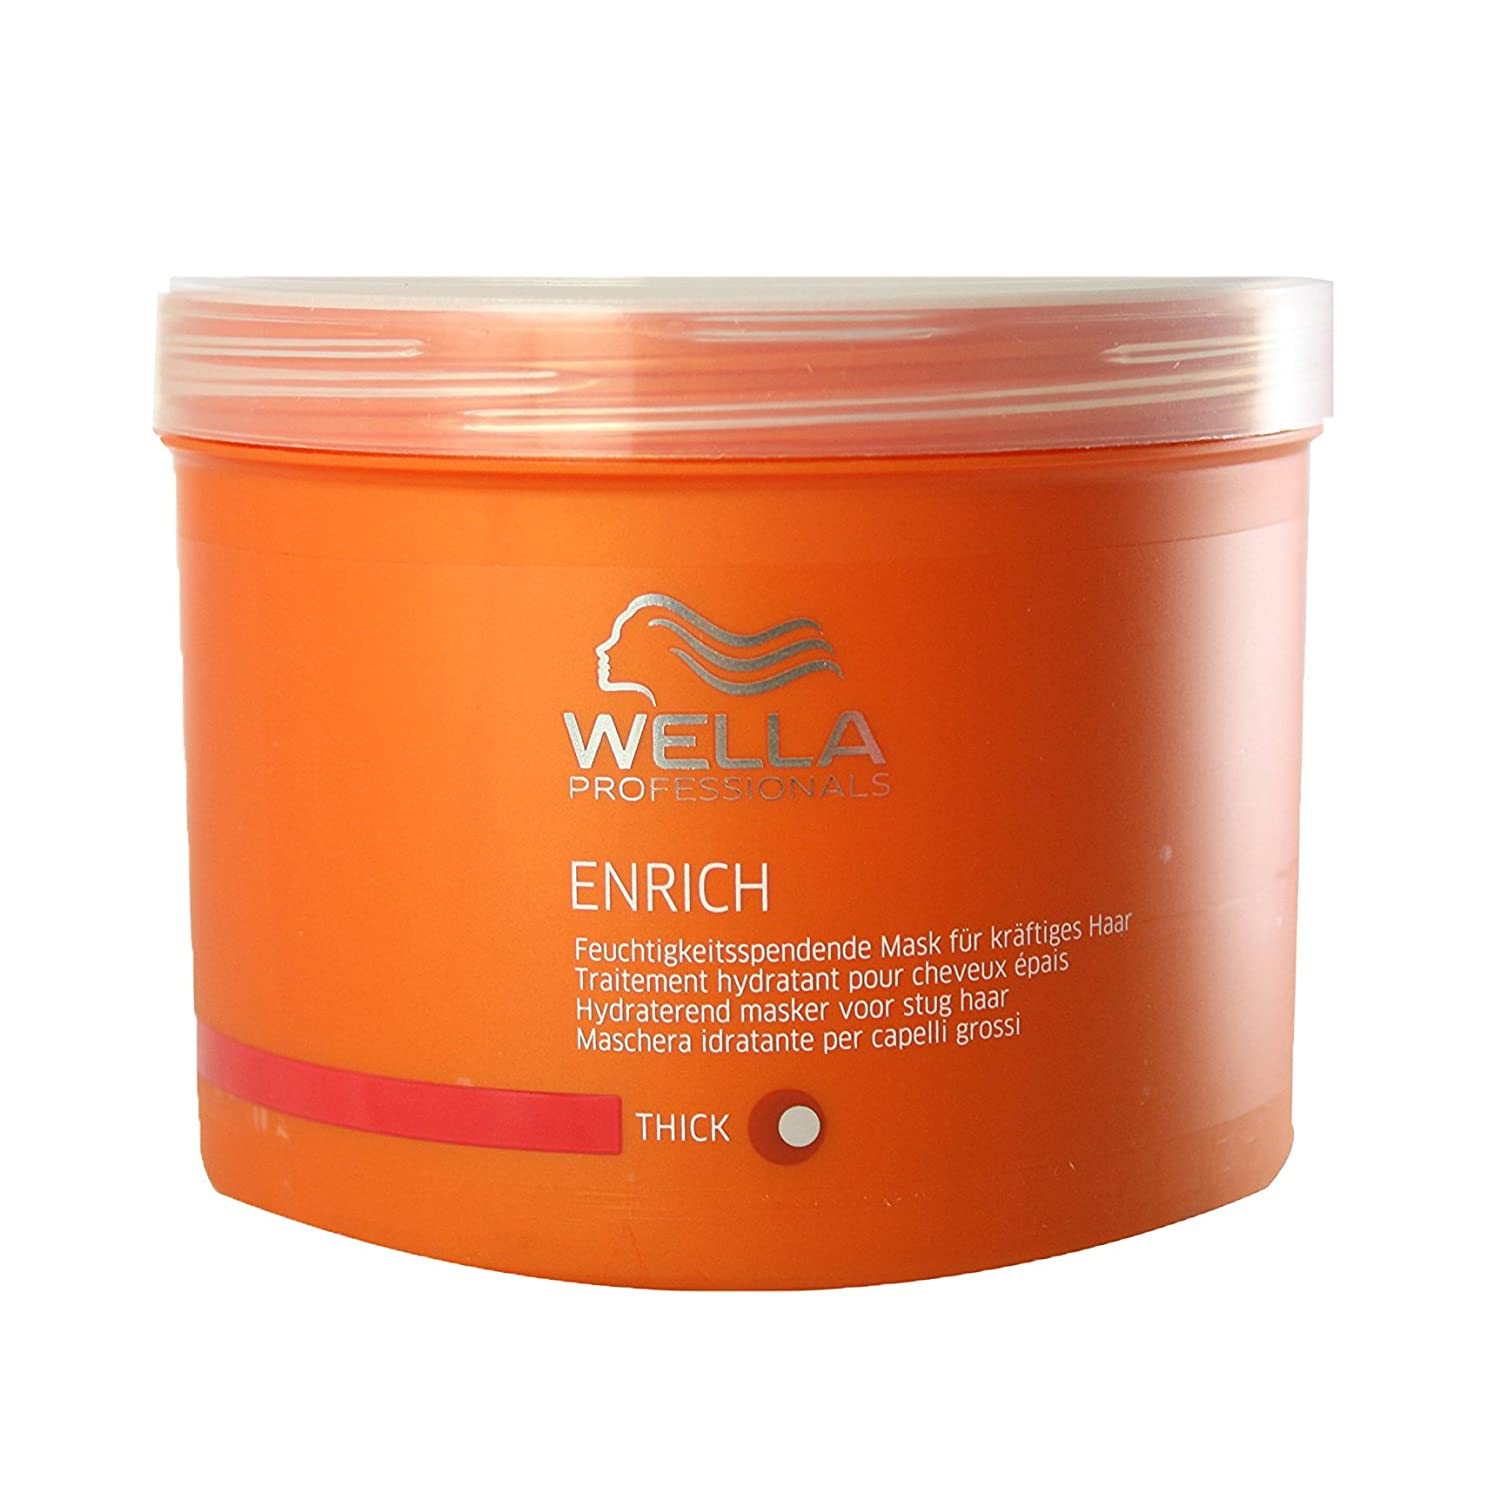 ENRICH HAIR CARE MASK THICK 500 ML P&G 4015600122508